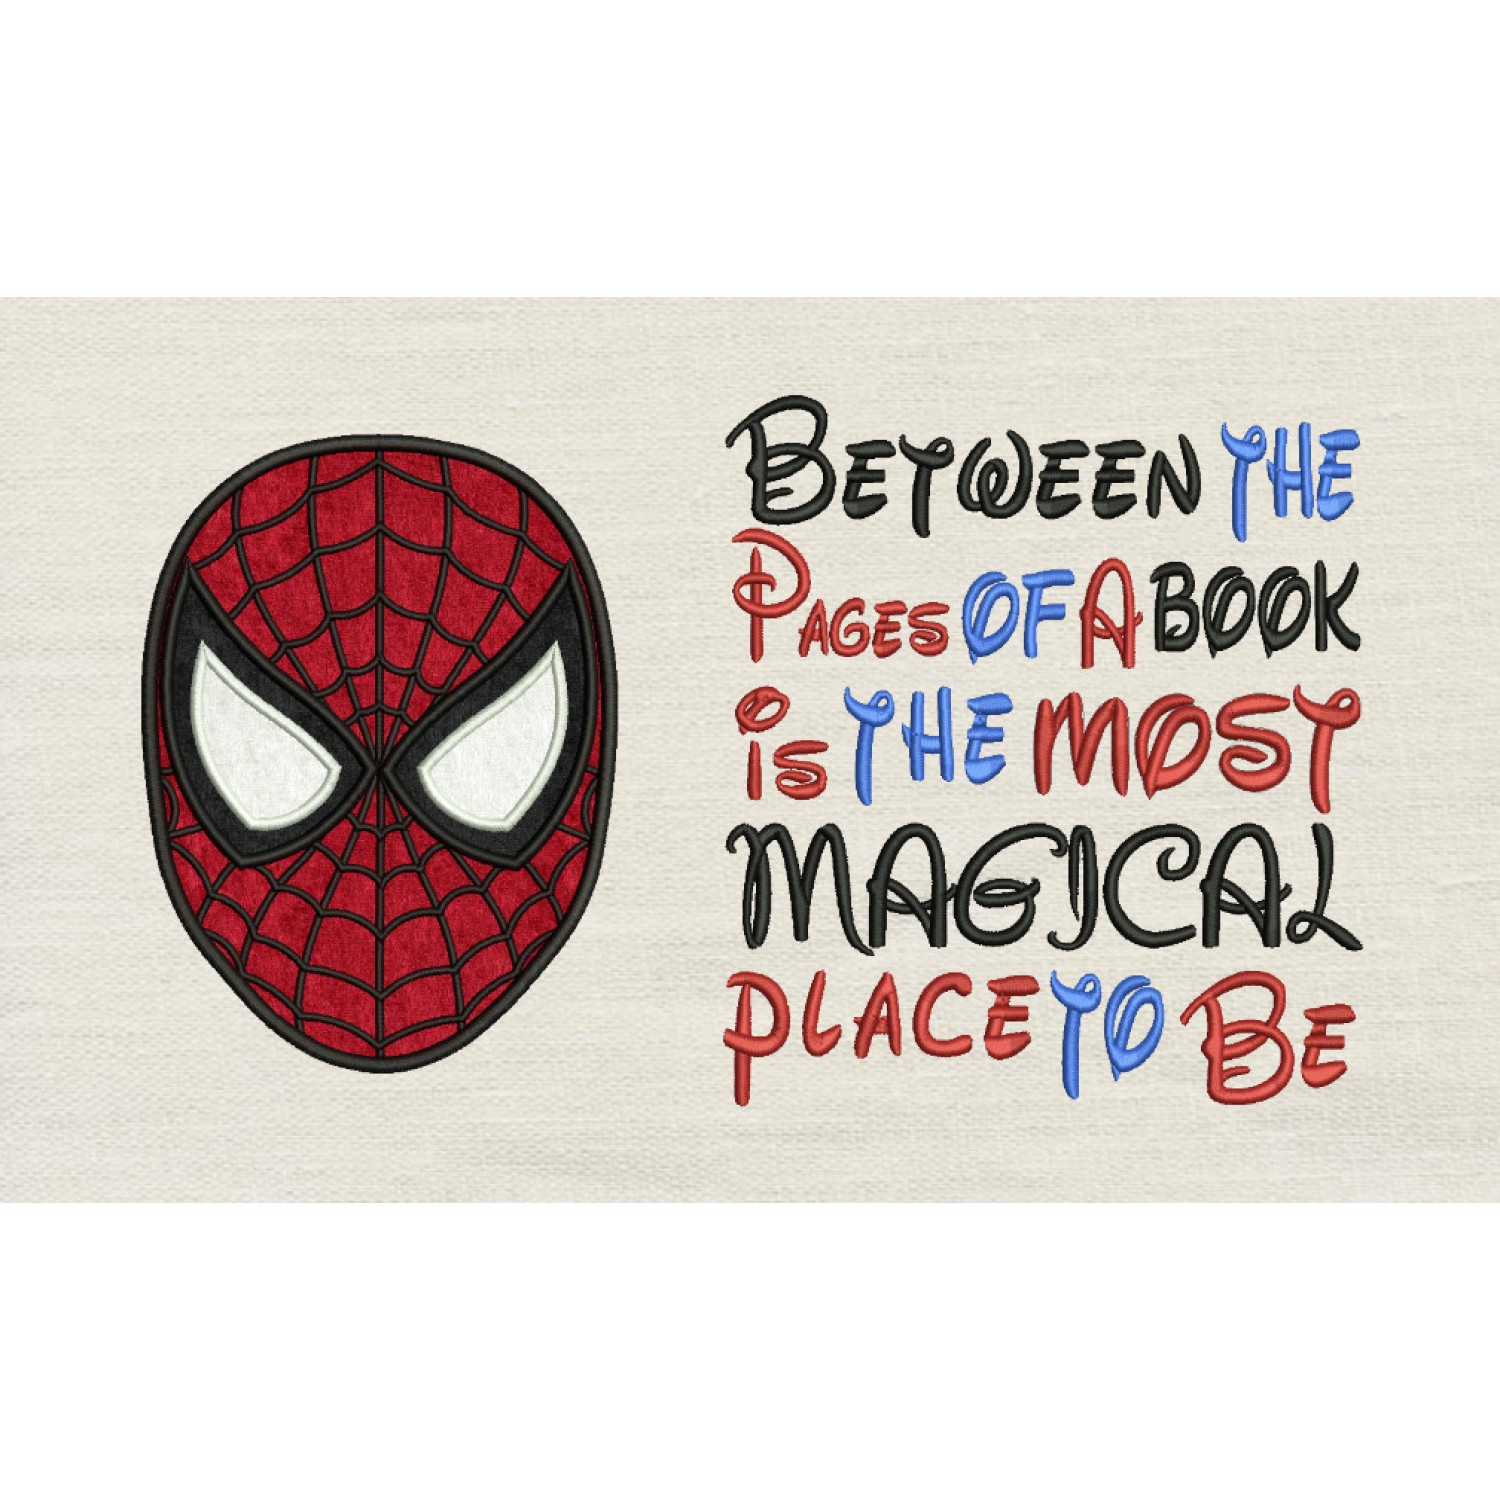 Spiderman face with Between the Pages Embroidery